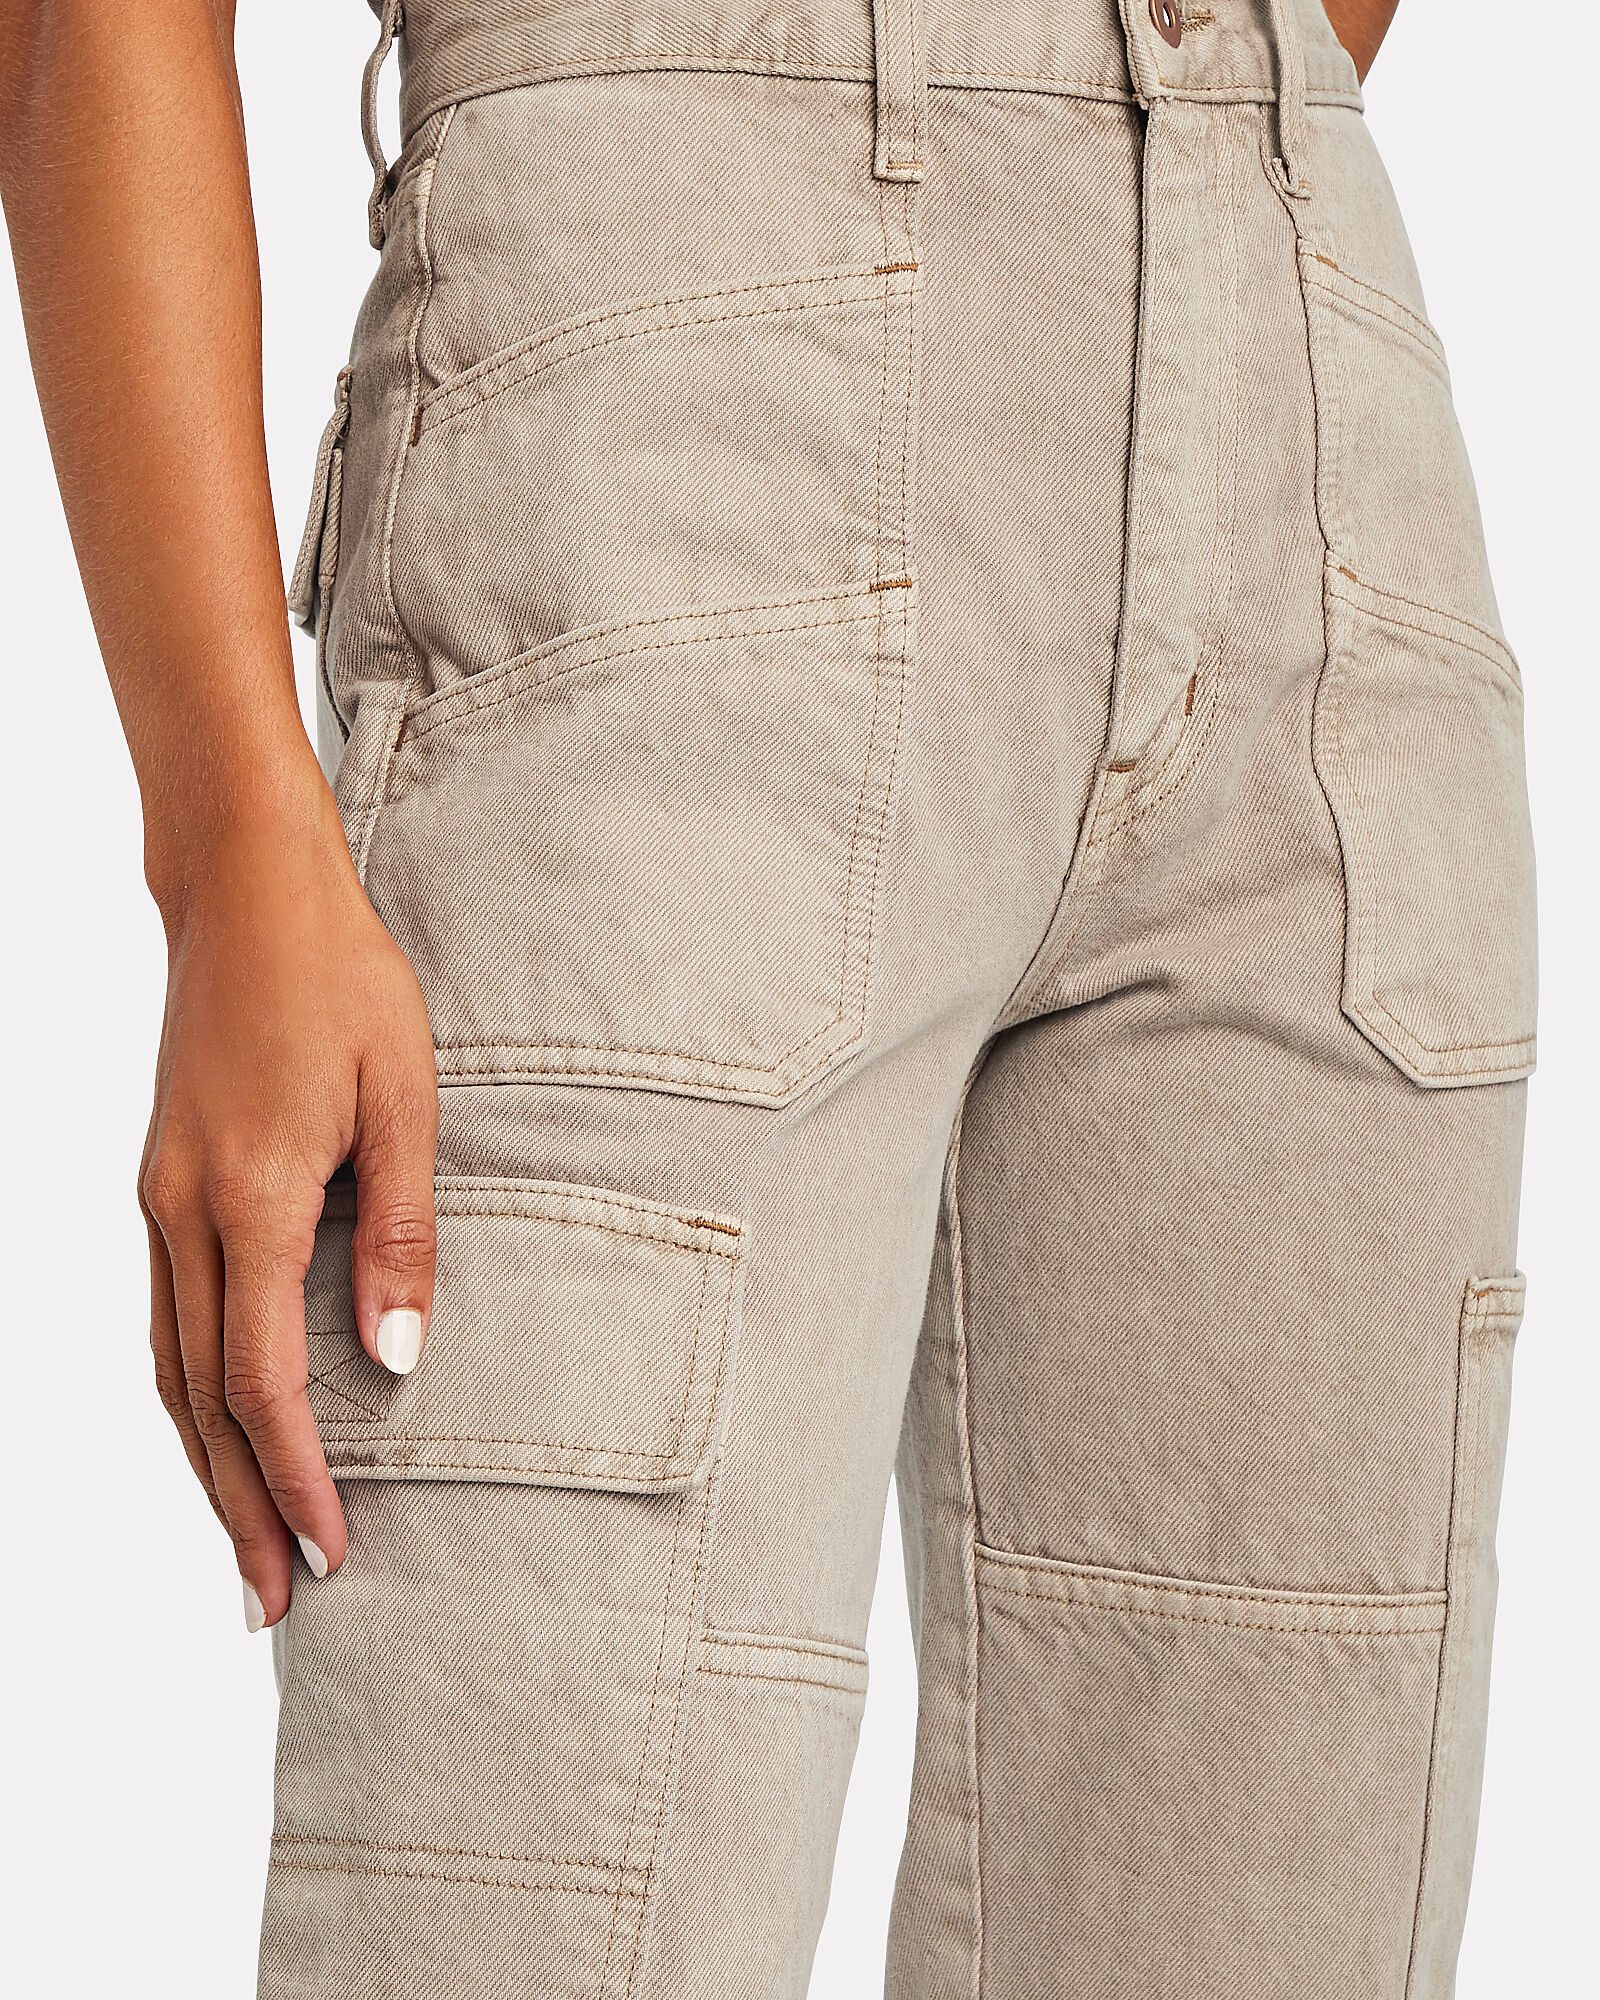 Savior High-Rise Cargo Jeans, BROWN, hi-res